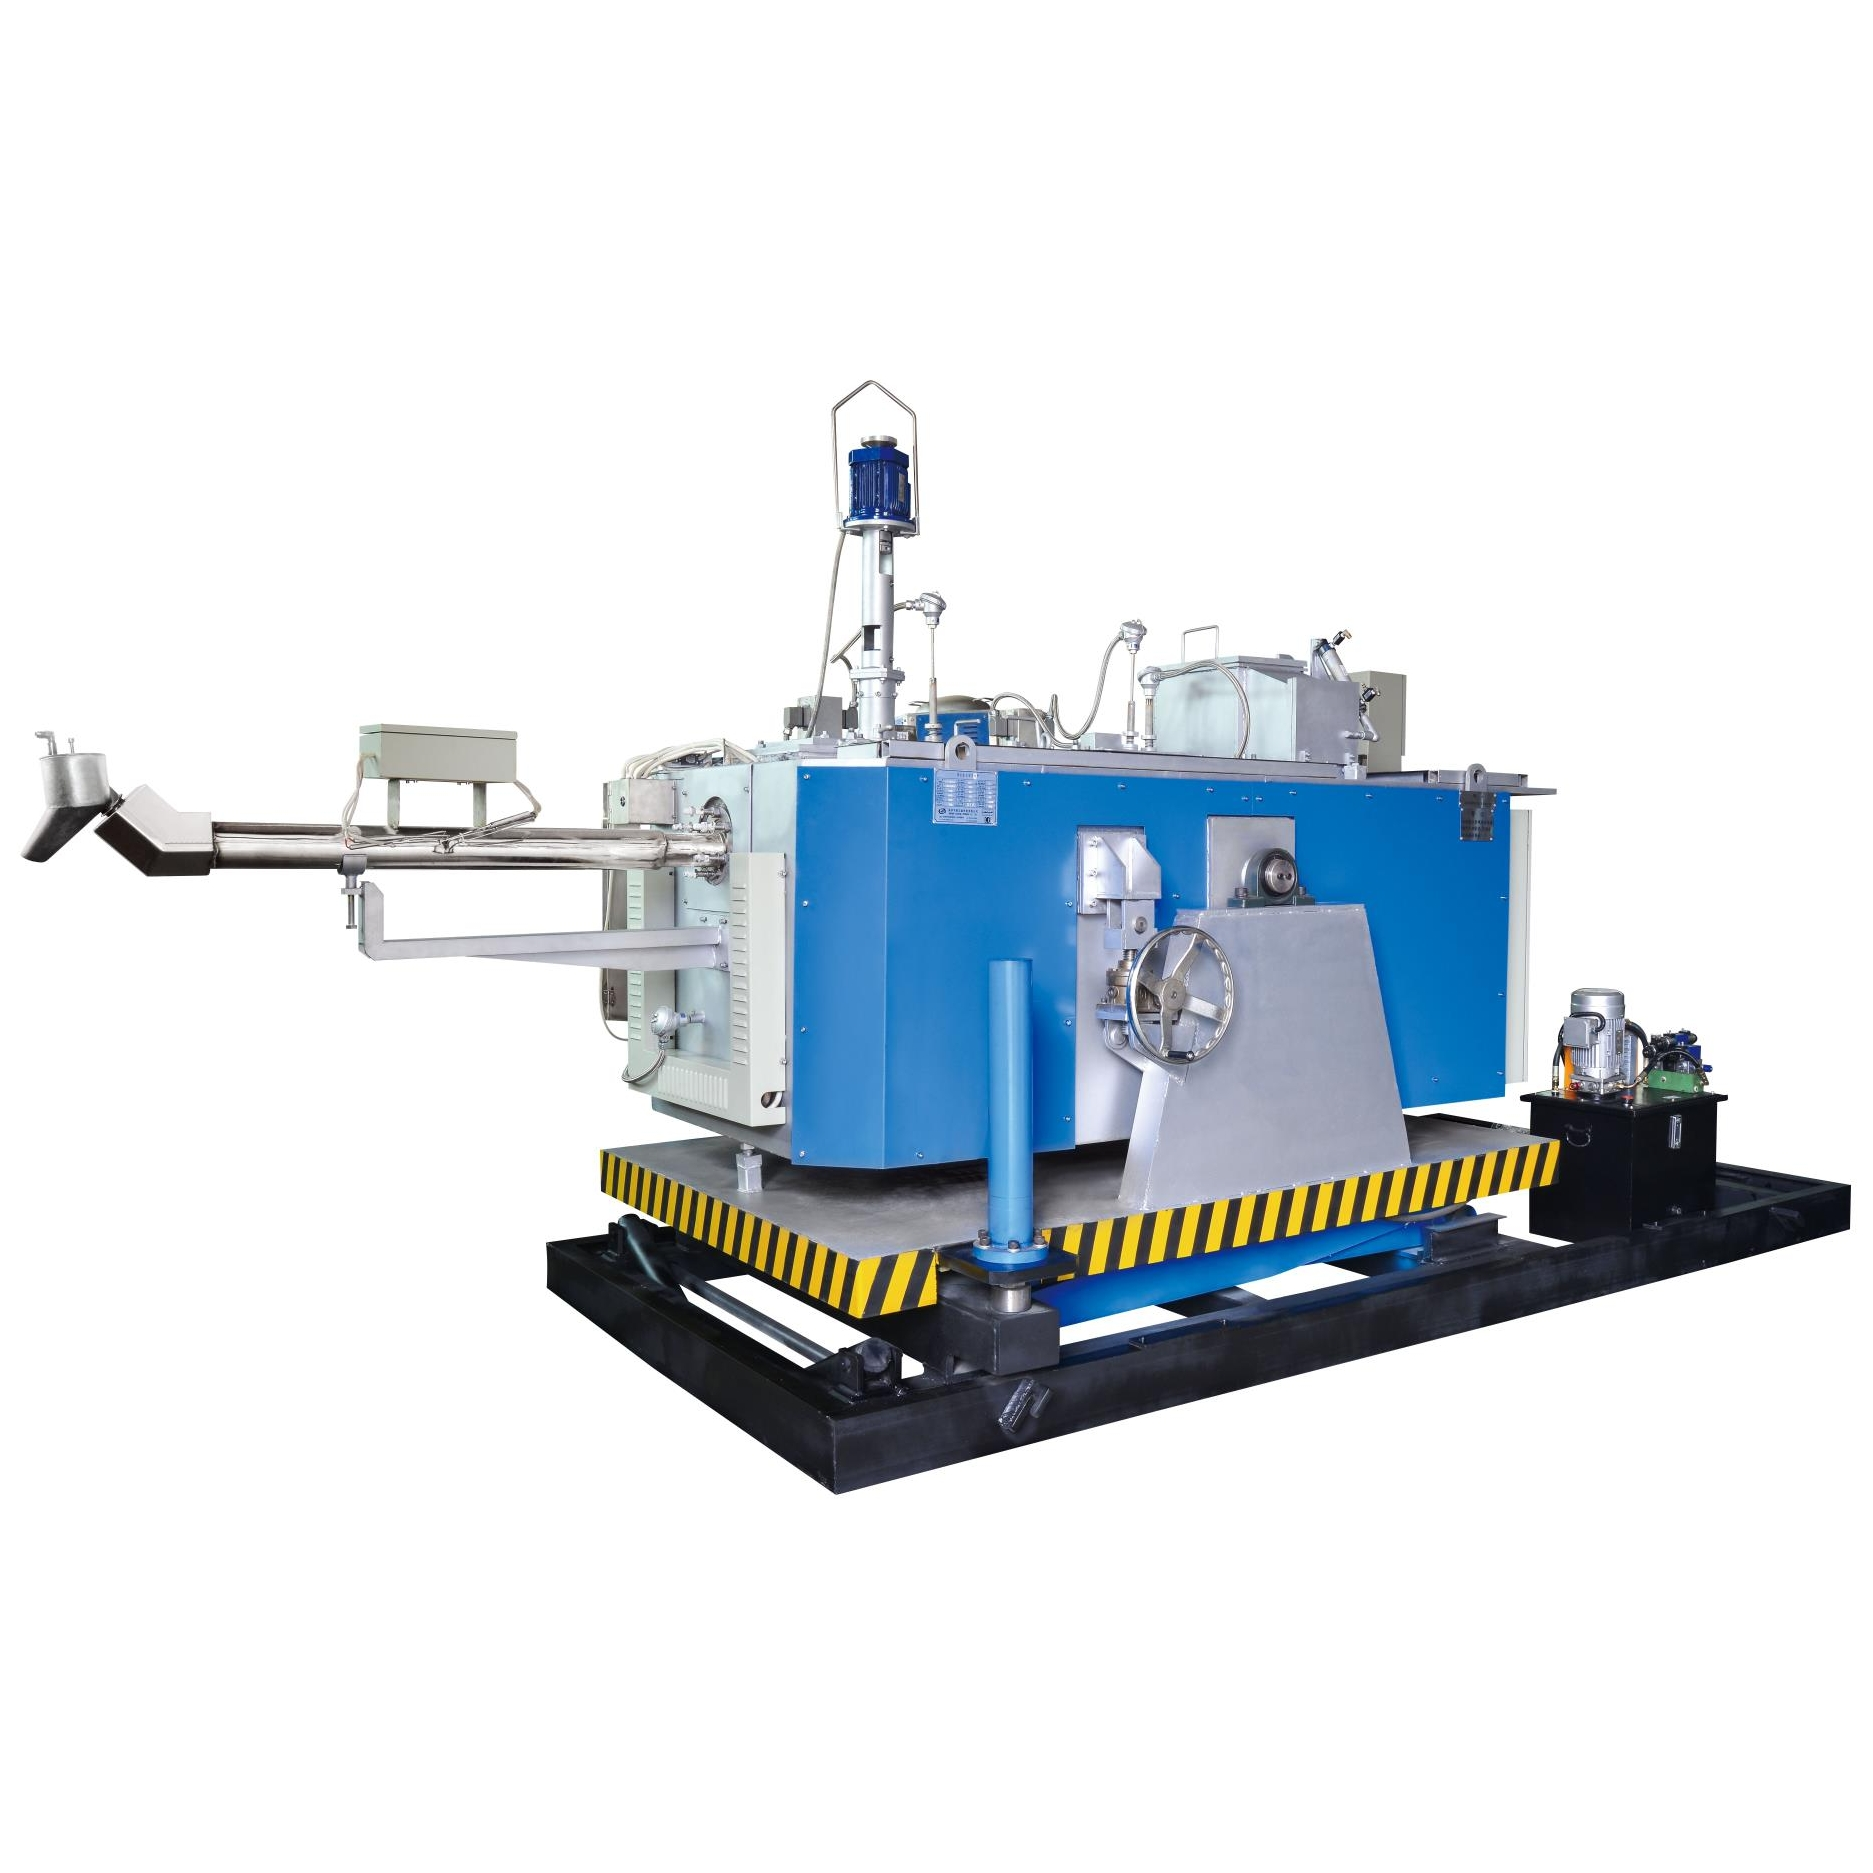 Electrical Magnesium Alloy Dosing Furnace 300kg/h